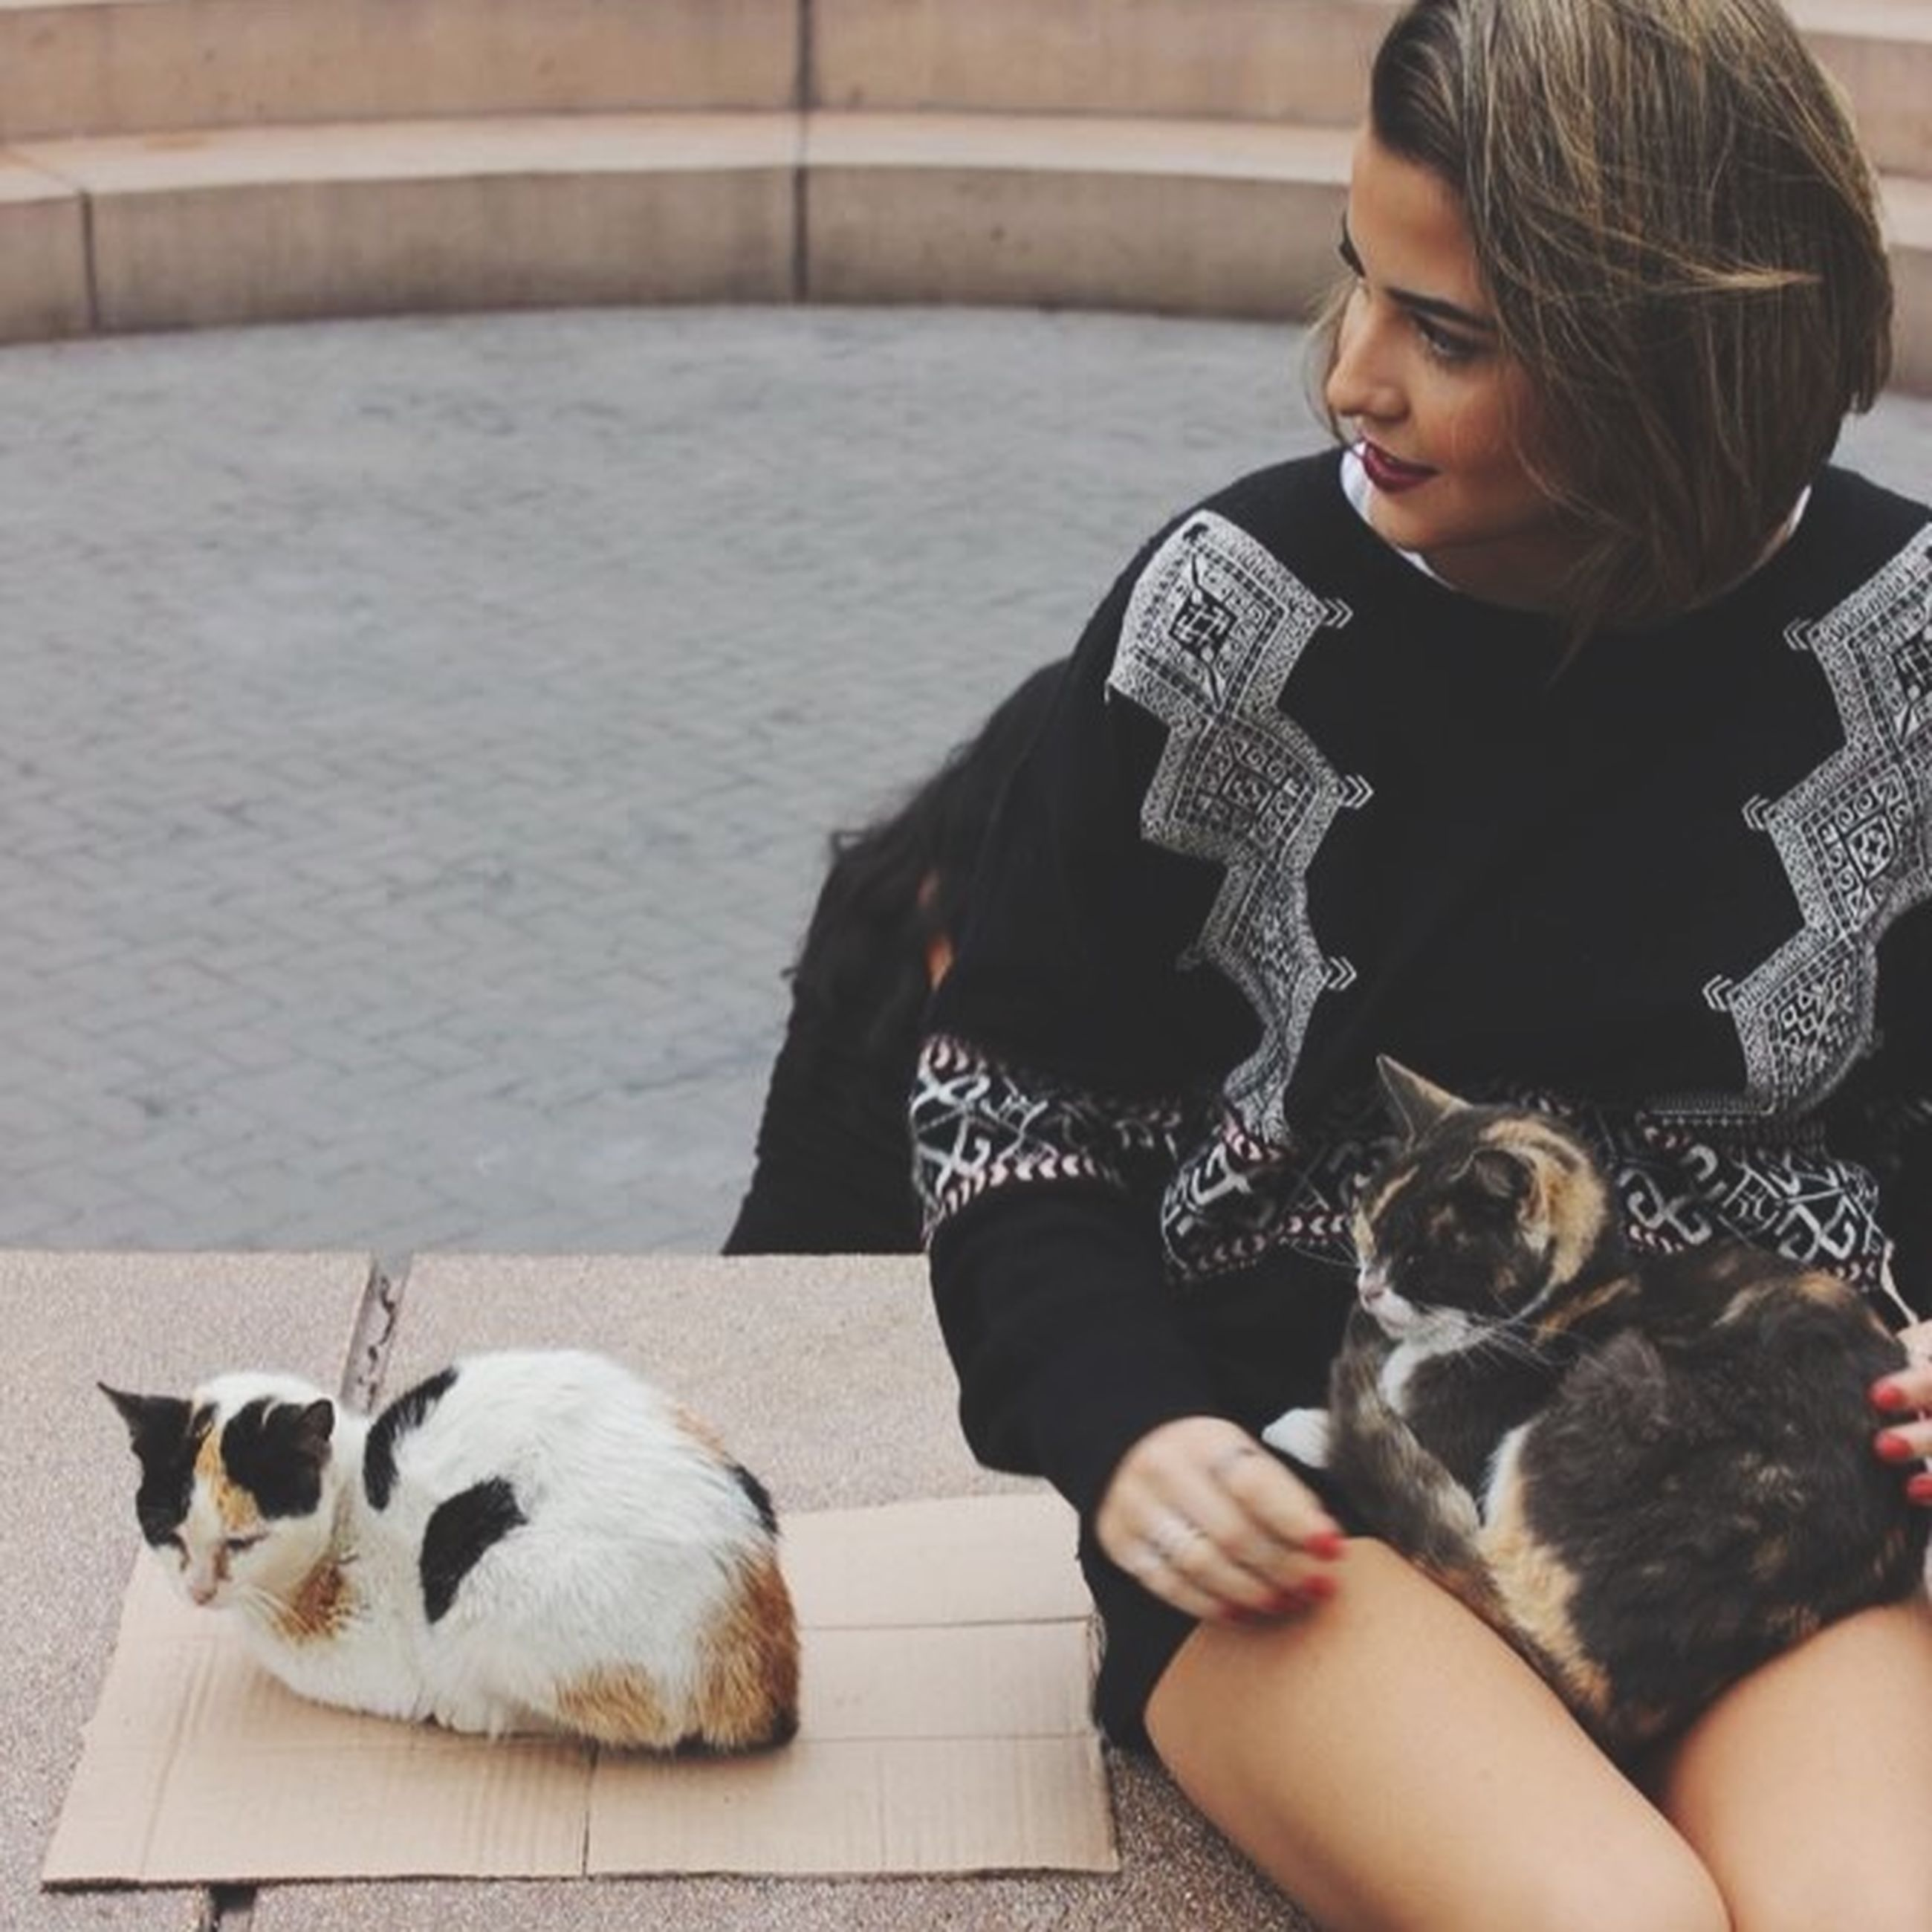 pets, domestic animals, animal themes, mammal, one animal, lifestyles, dog, leisure activity, person, sitting, relaxation, pet owner, lying down, casual clothing, domestic cat, childhood, togetherness, full length